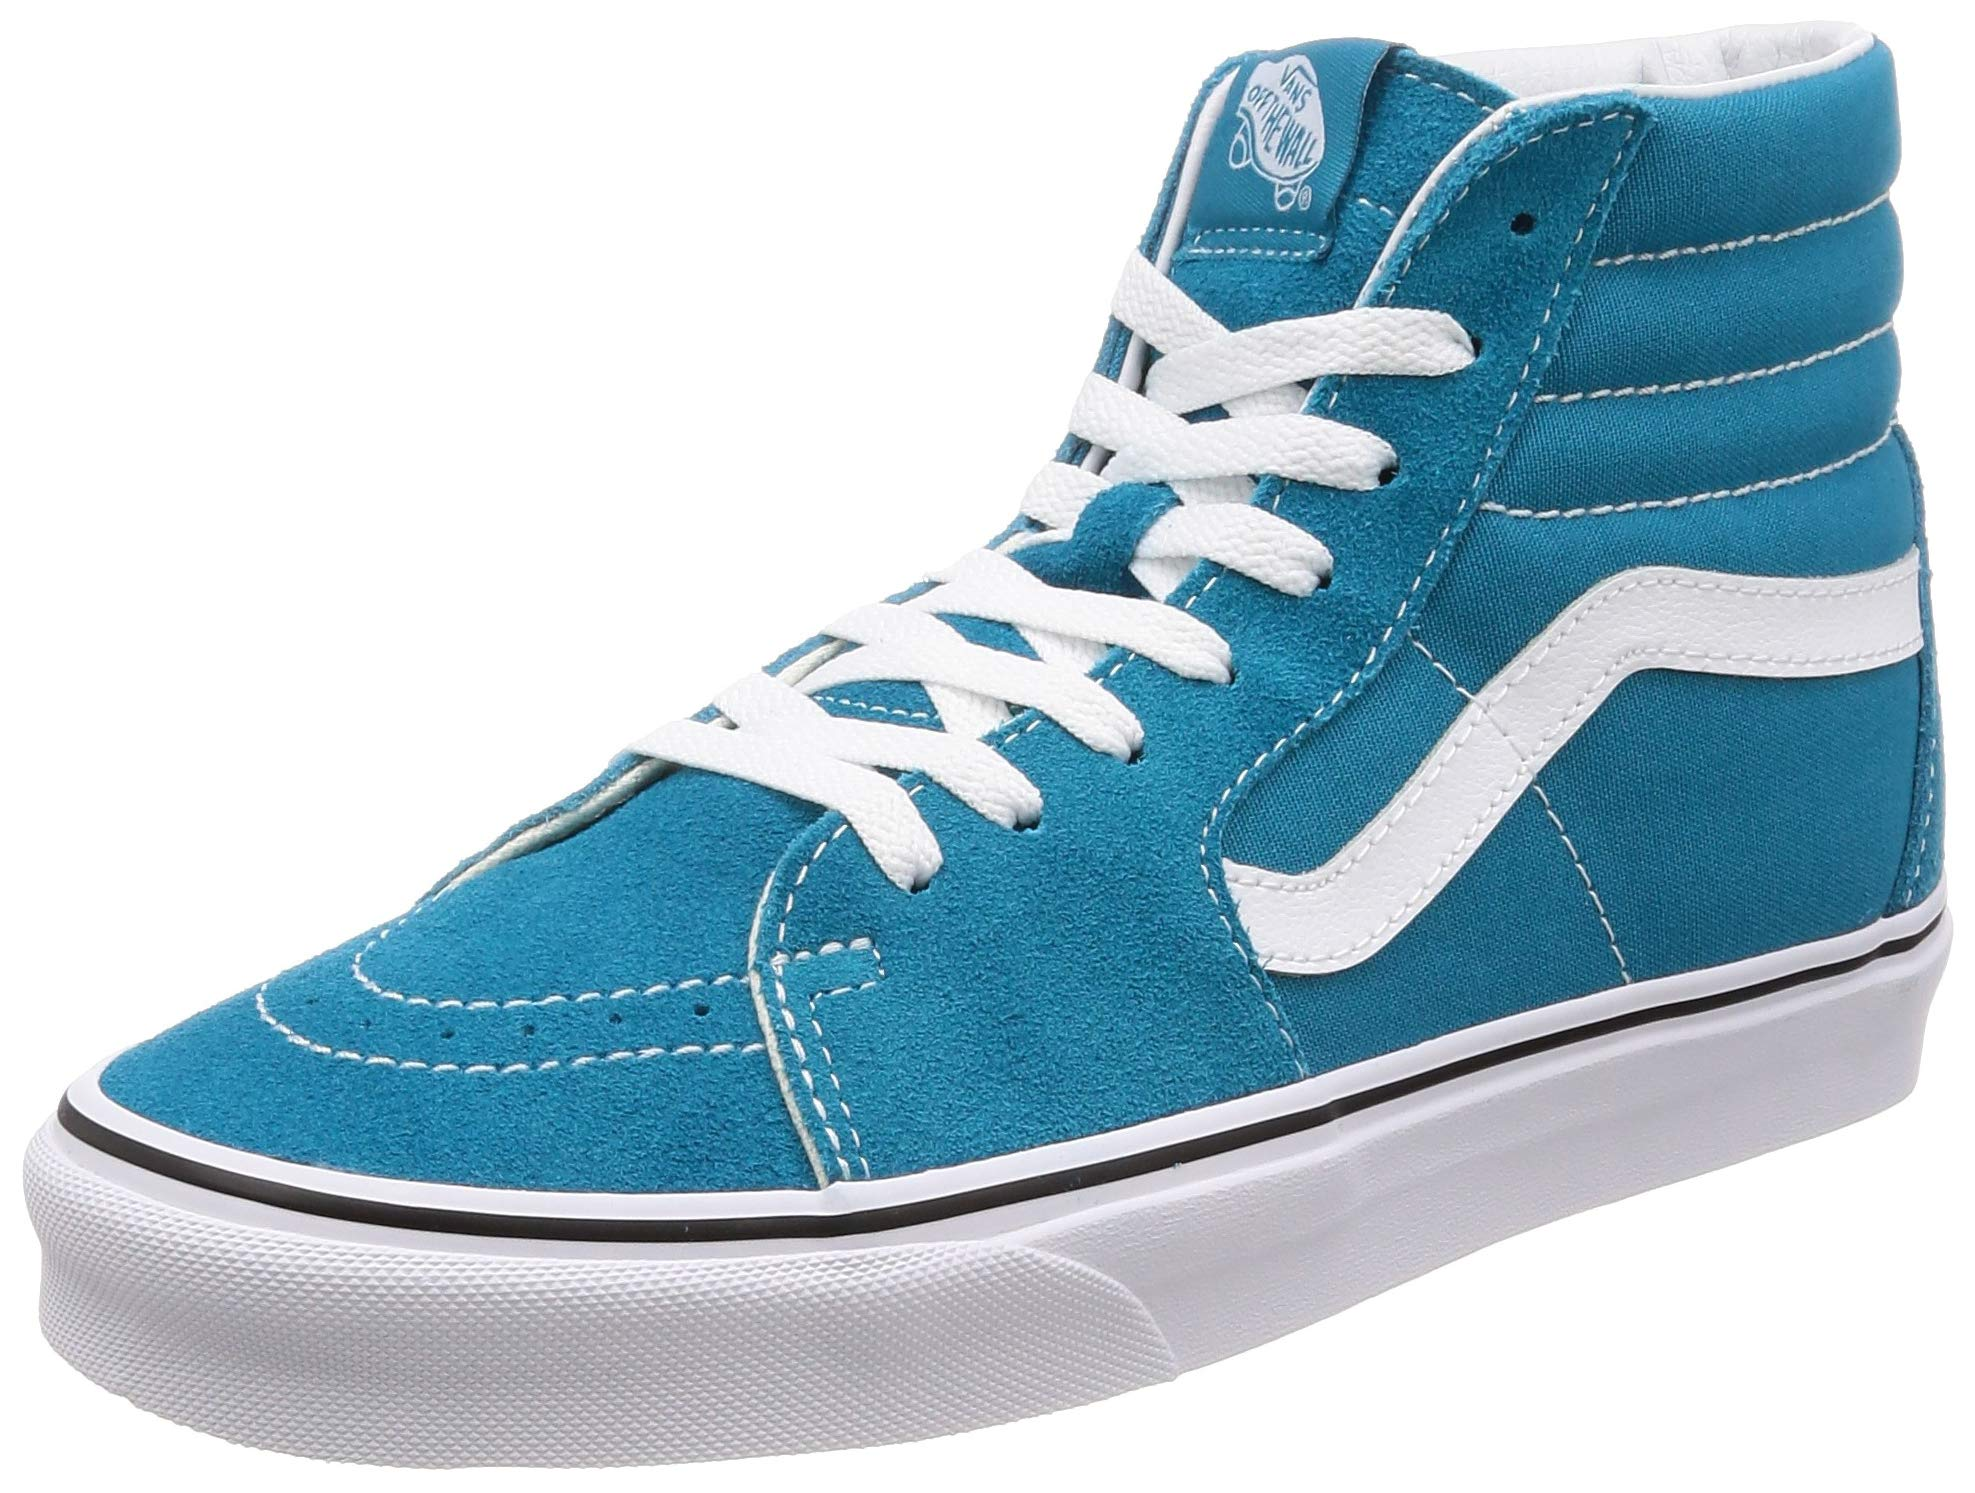 047ae637c8 Galleon - Vans Skate Shoe (Men 10 Women 11.5